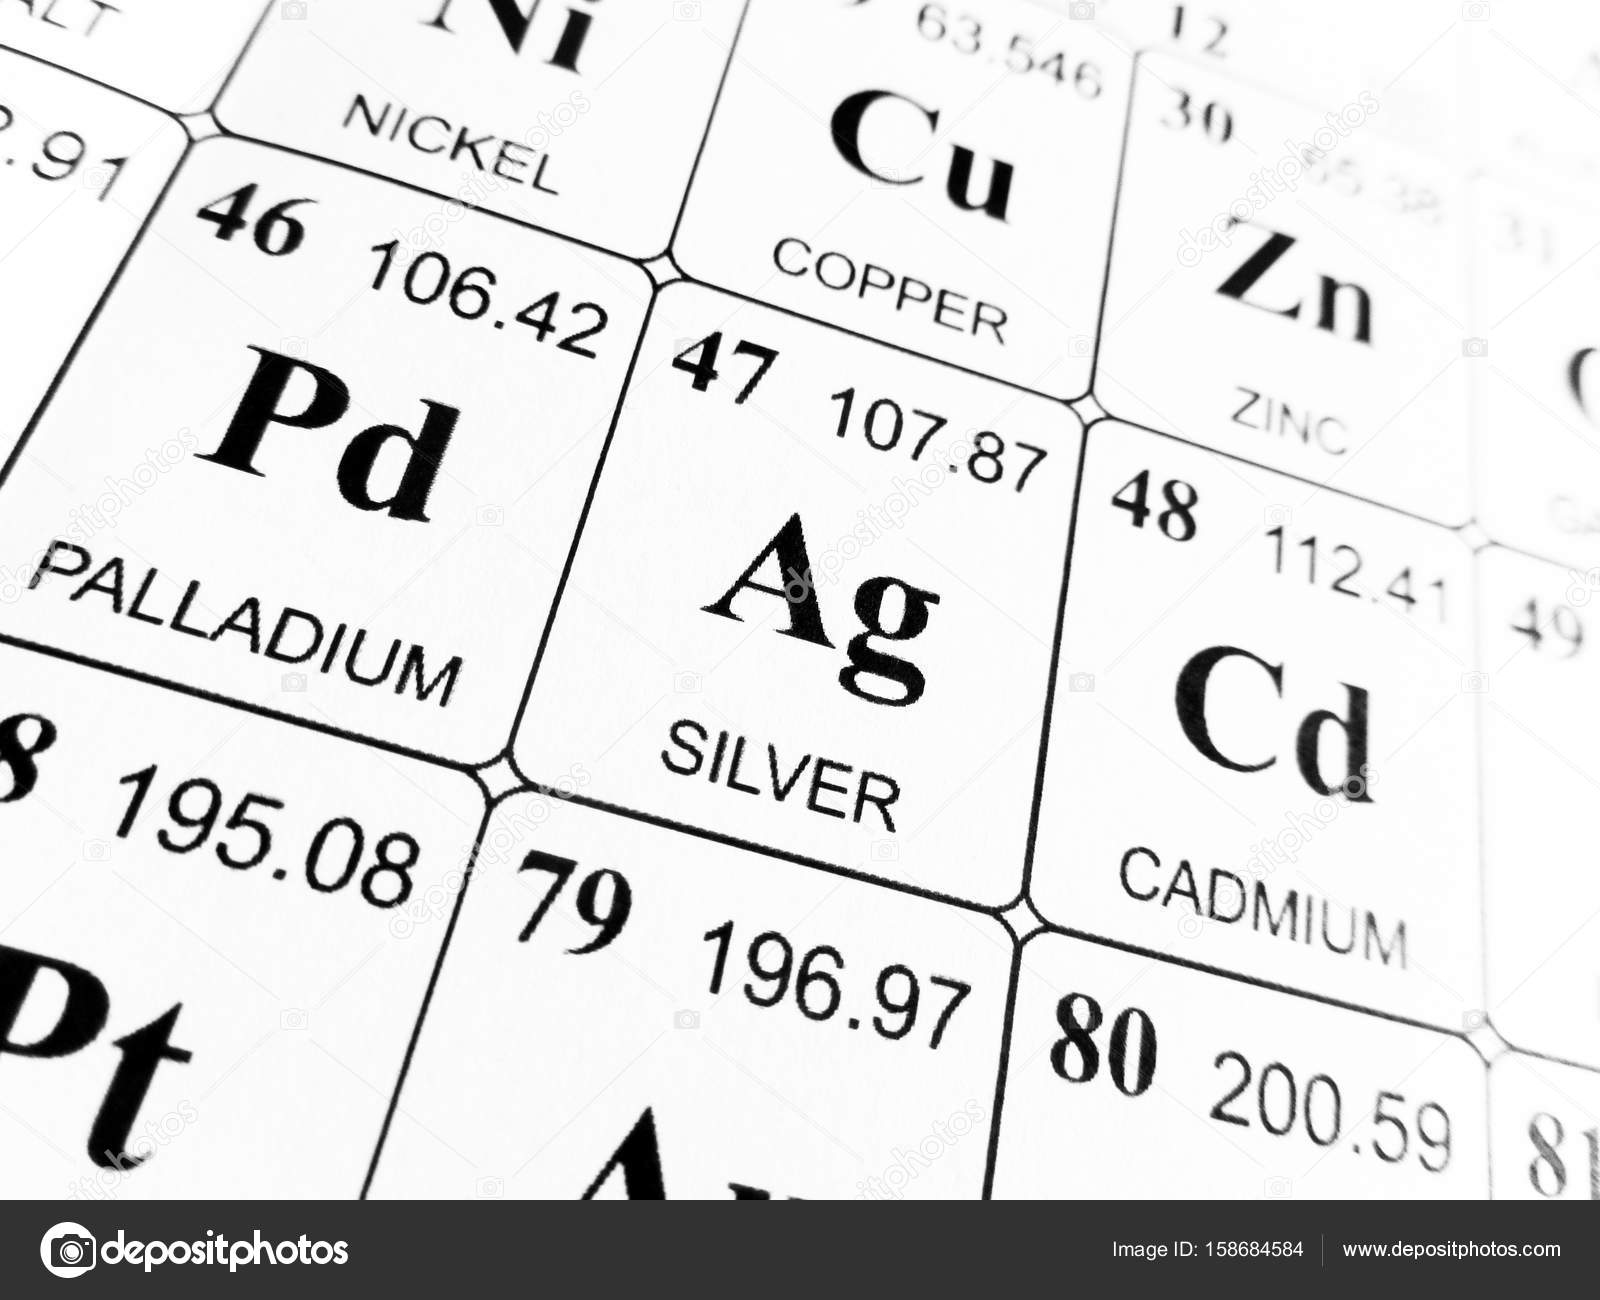 Silver on the periodic table of the elements stock photo silver on the periodic table of the elements stock photo urtaz Image collections